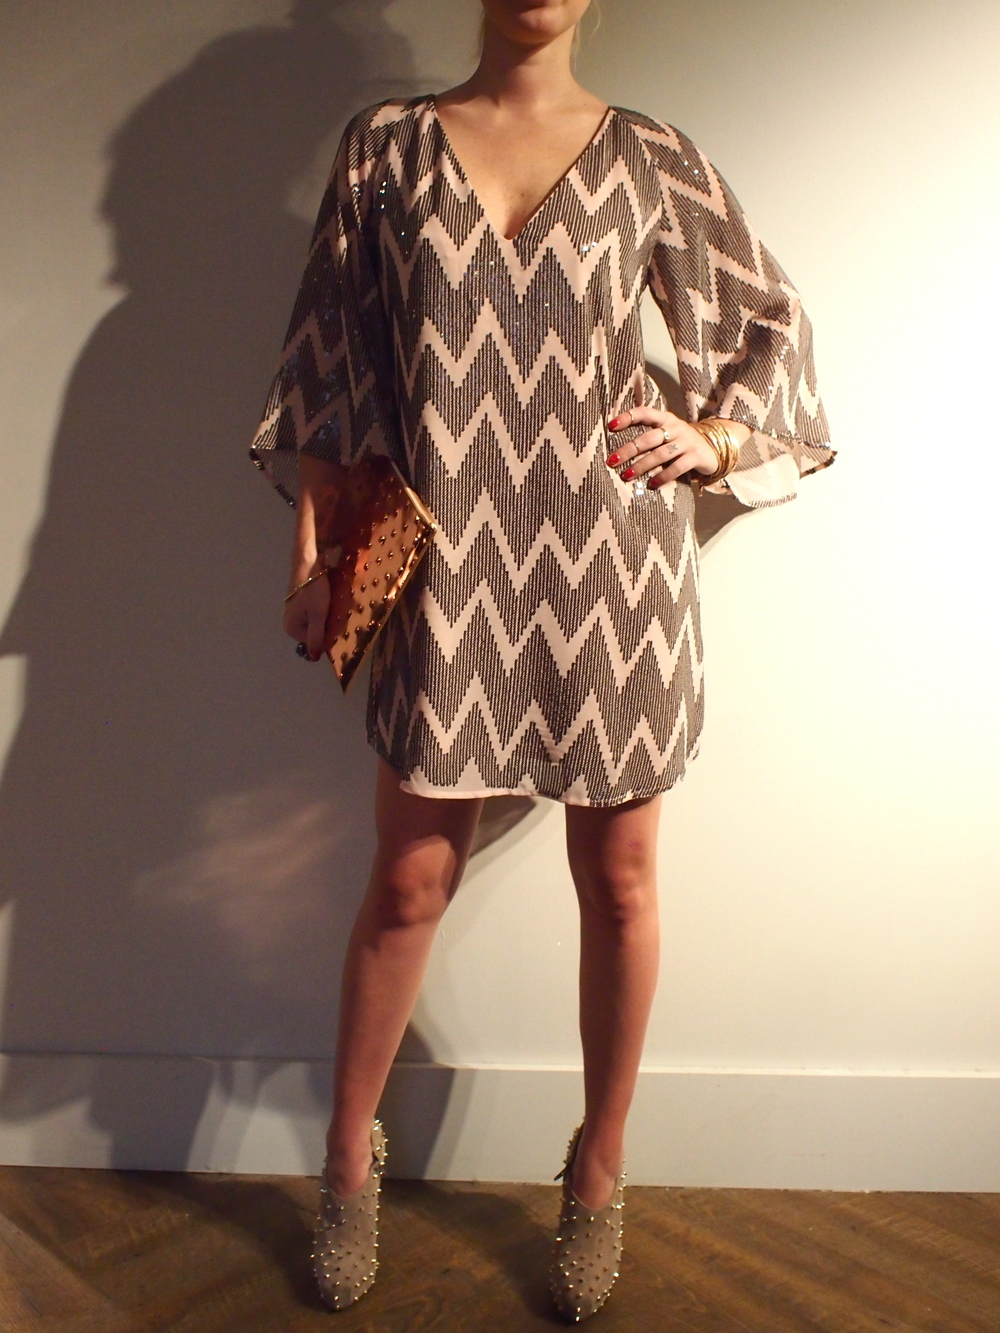 Corey Lynn - Christine V-Neck Kimono Dress: $335